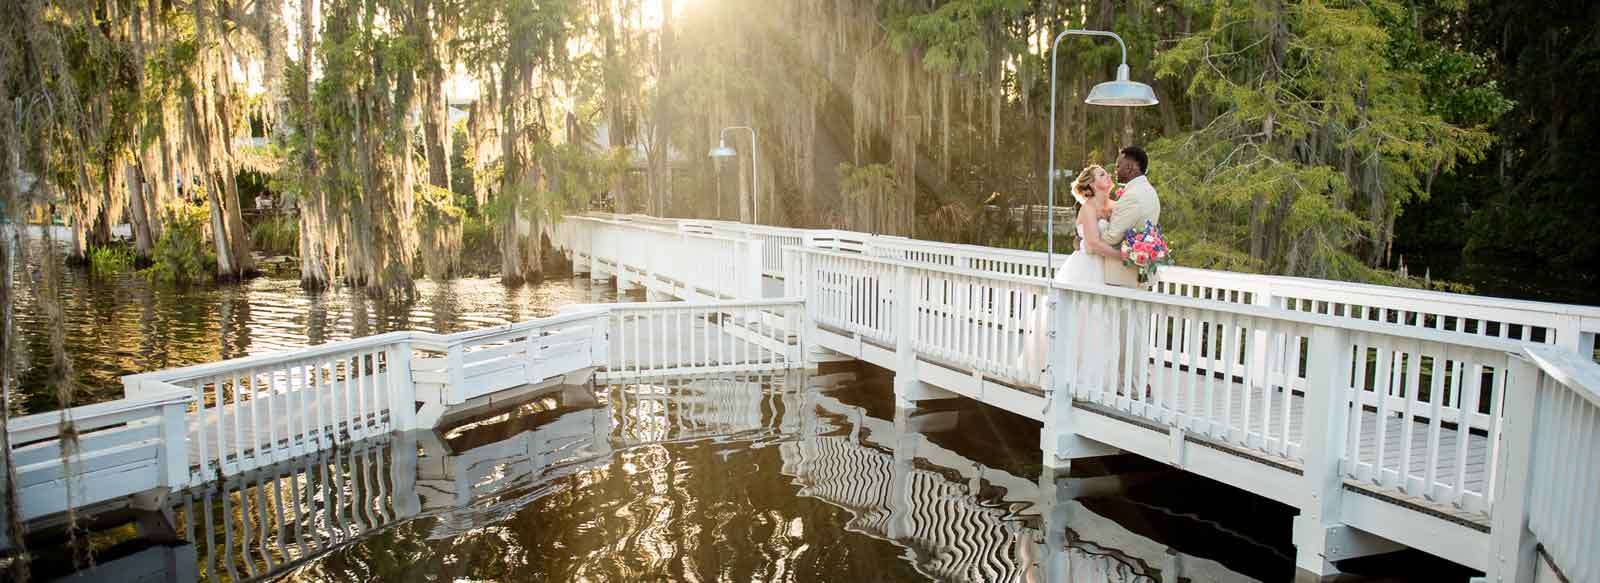 Contact Paradise Cove, an idyllic Orlando beach wedding venue on the shores of Lake Bryan. A fairy tale wedding to fit your vision & budget. Schedule a tour today. Discover our boho, romantic waterfront wedding venue, minutes from Disney.